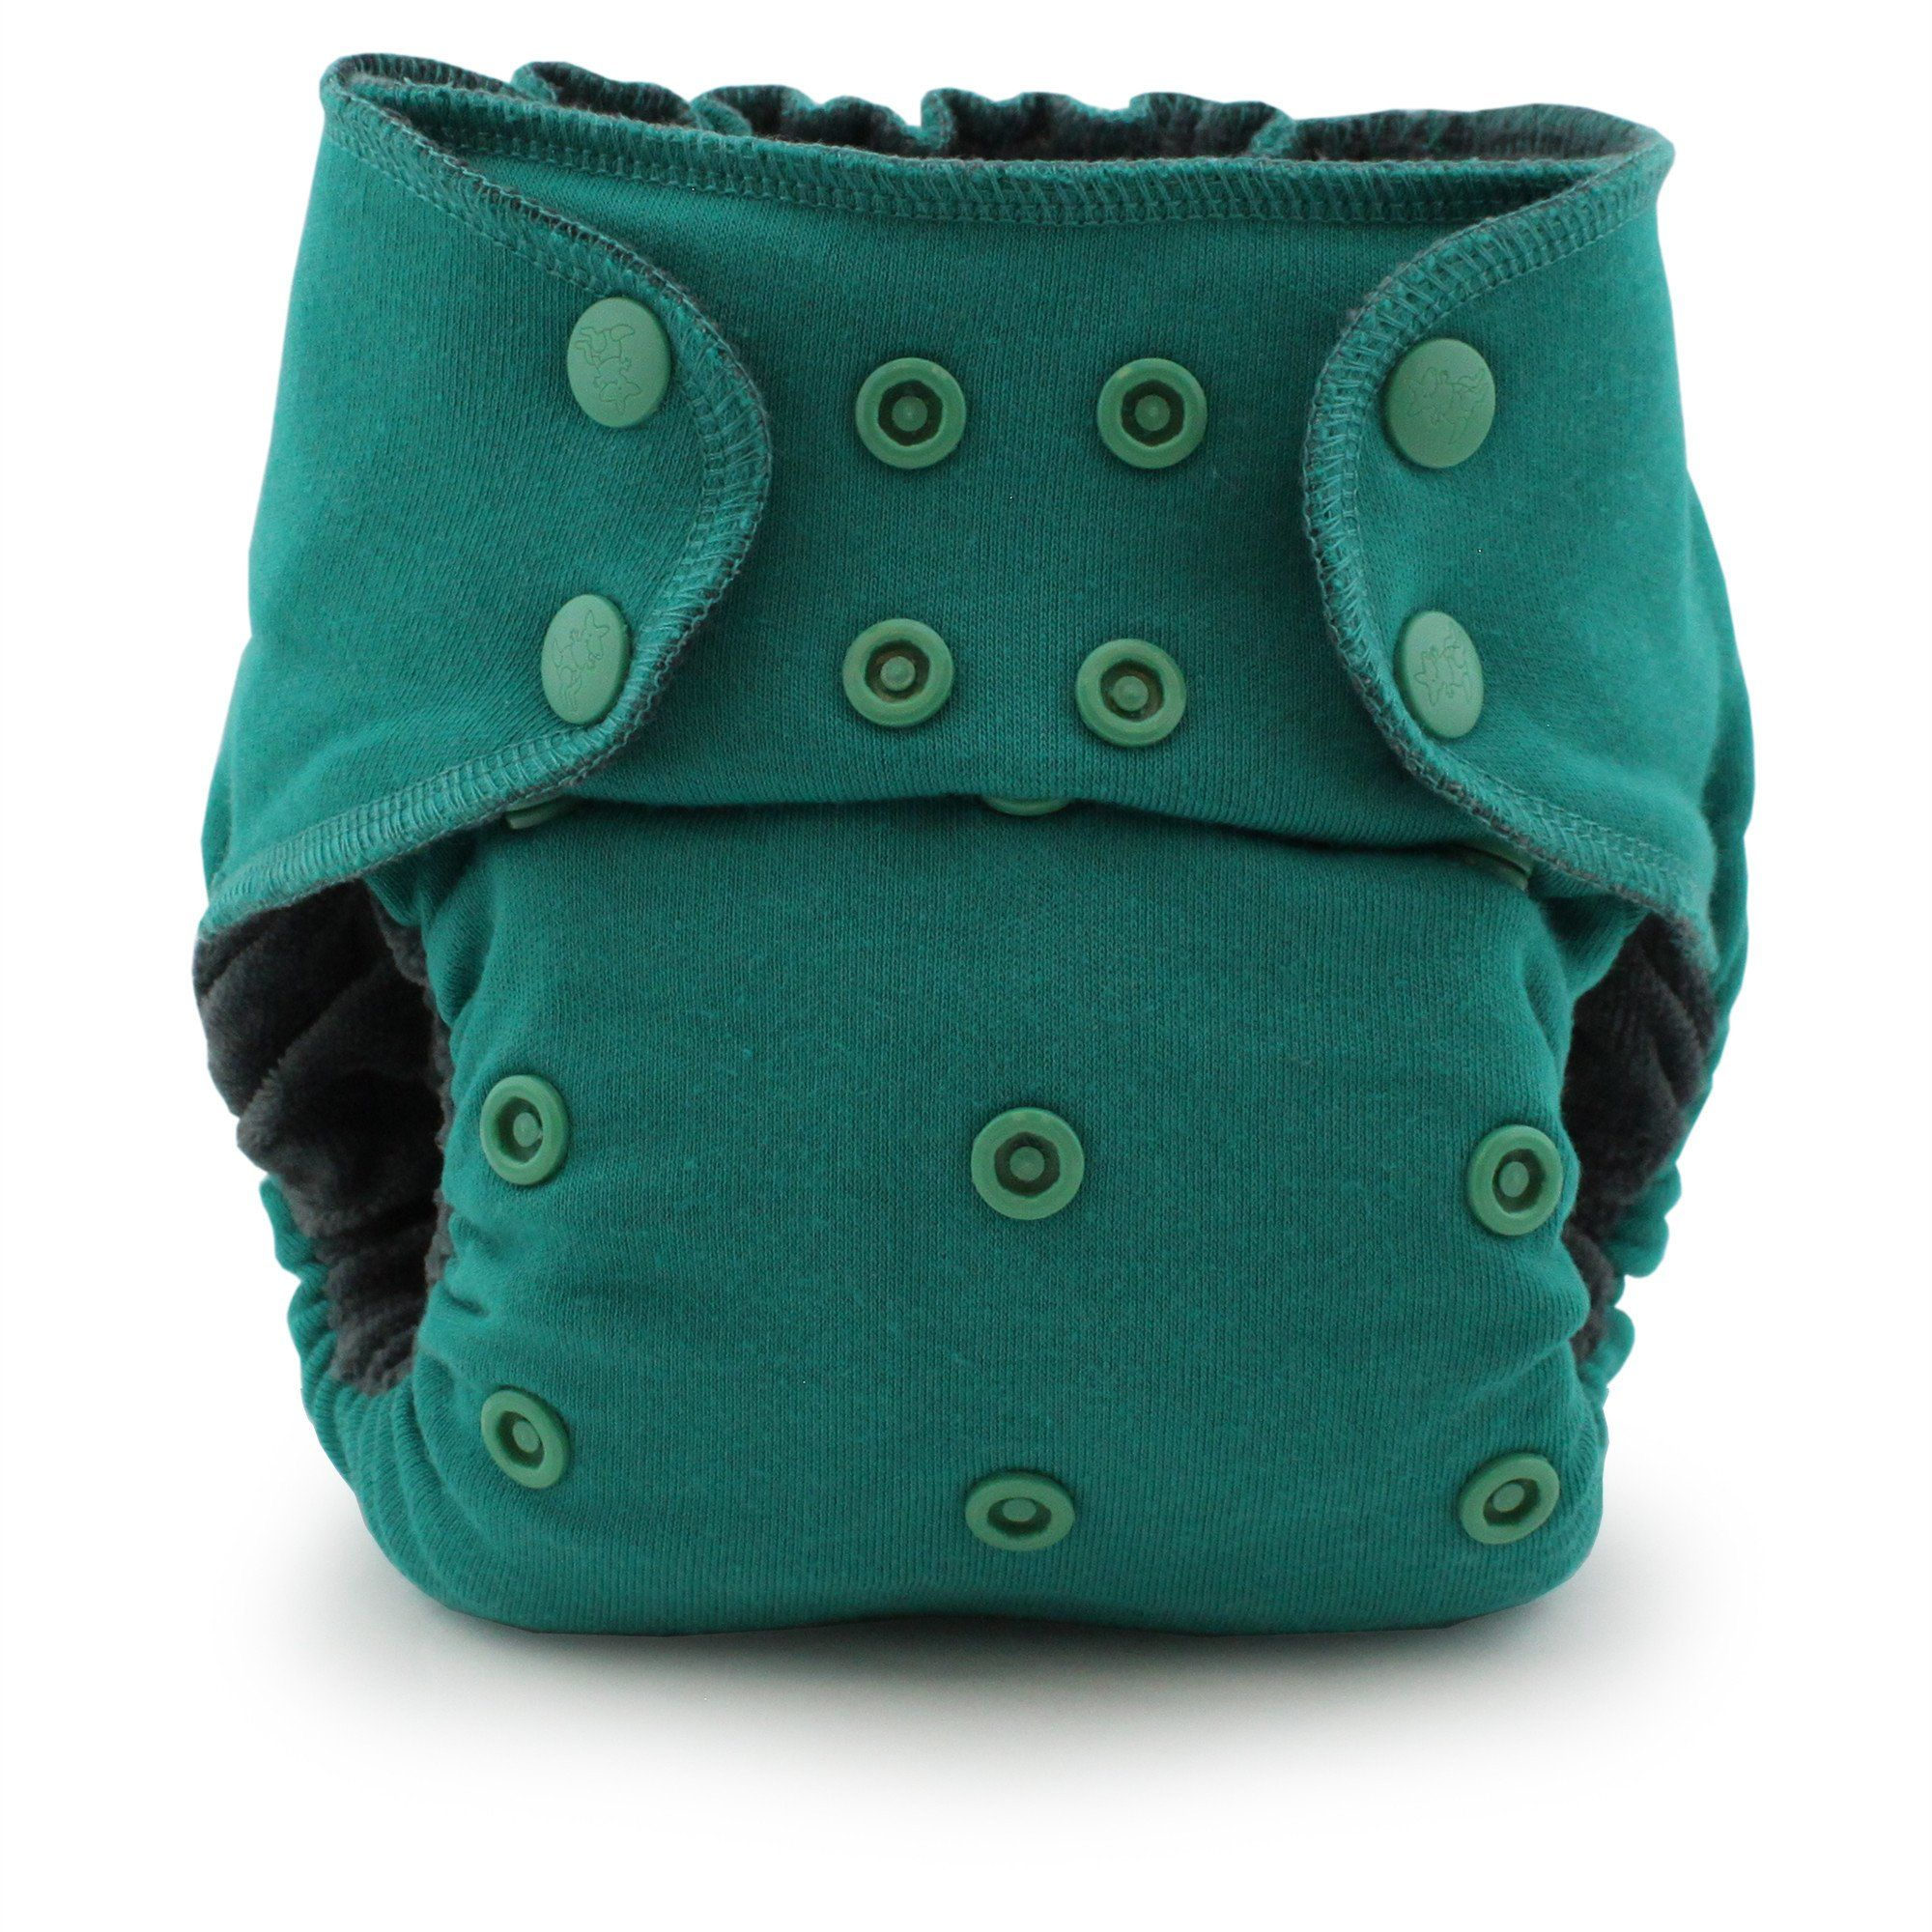 Ecoposh obv fitted cloth diaper one size cloth diapers